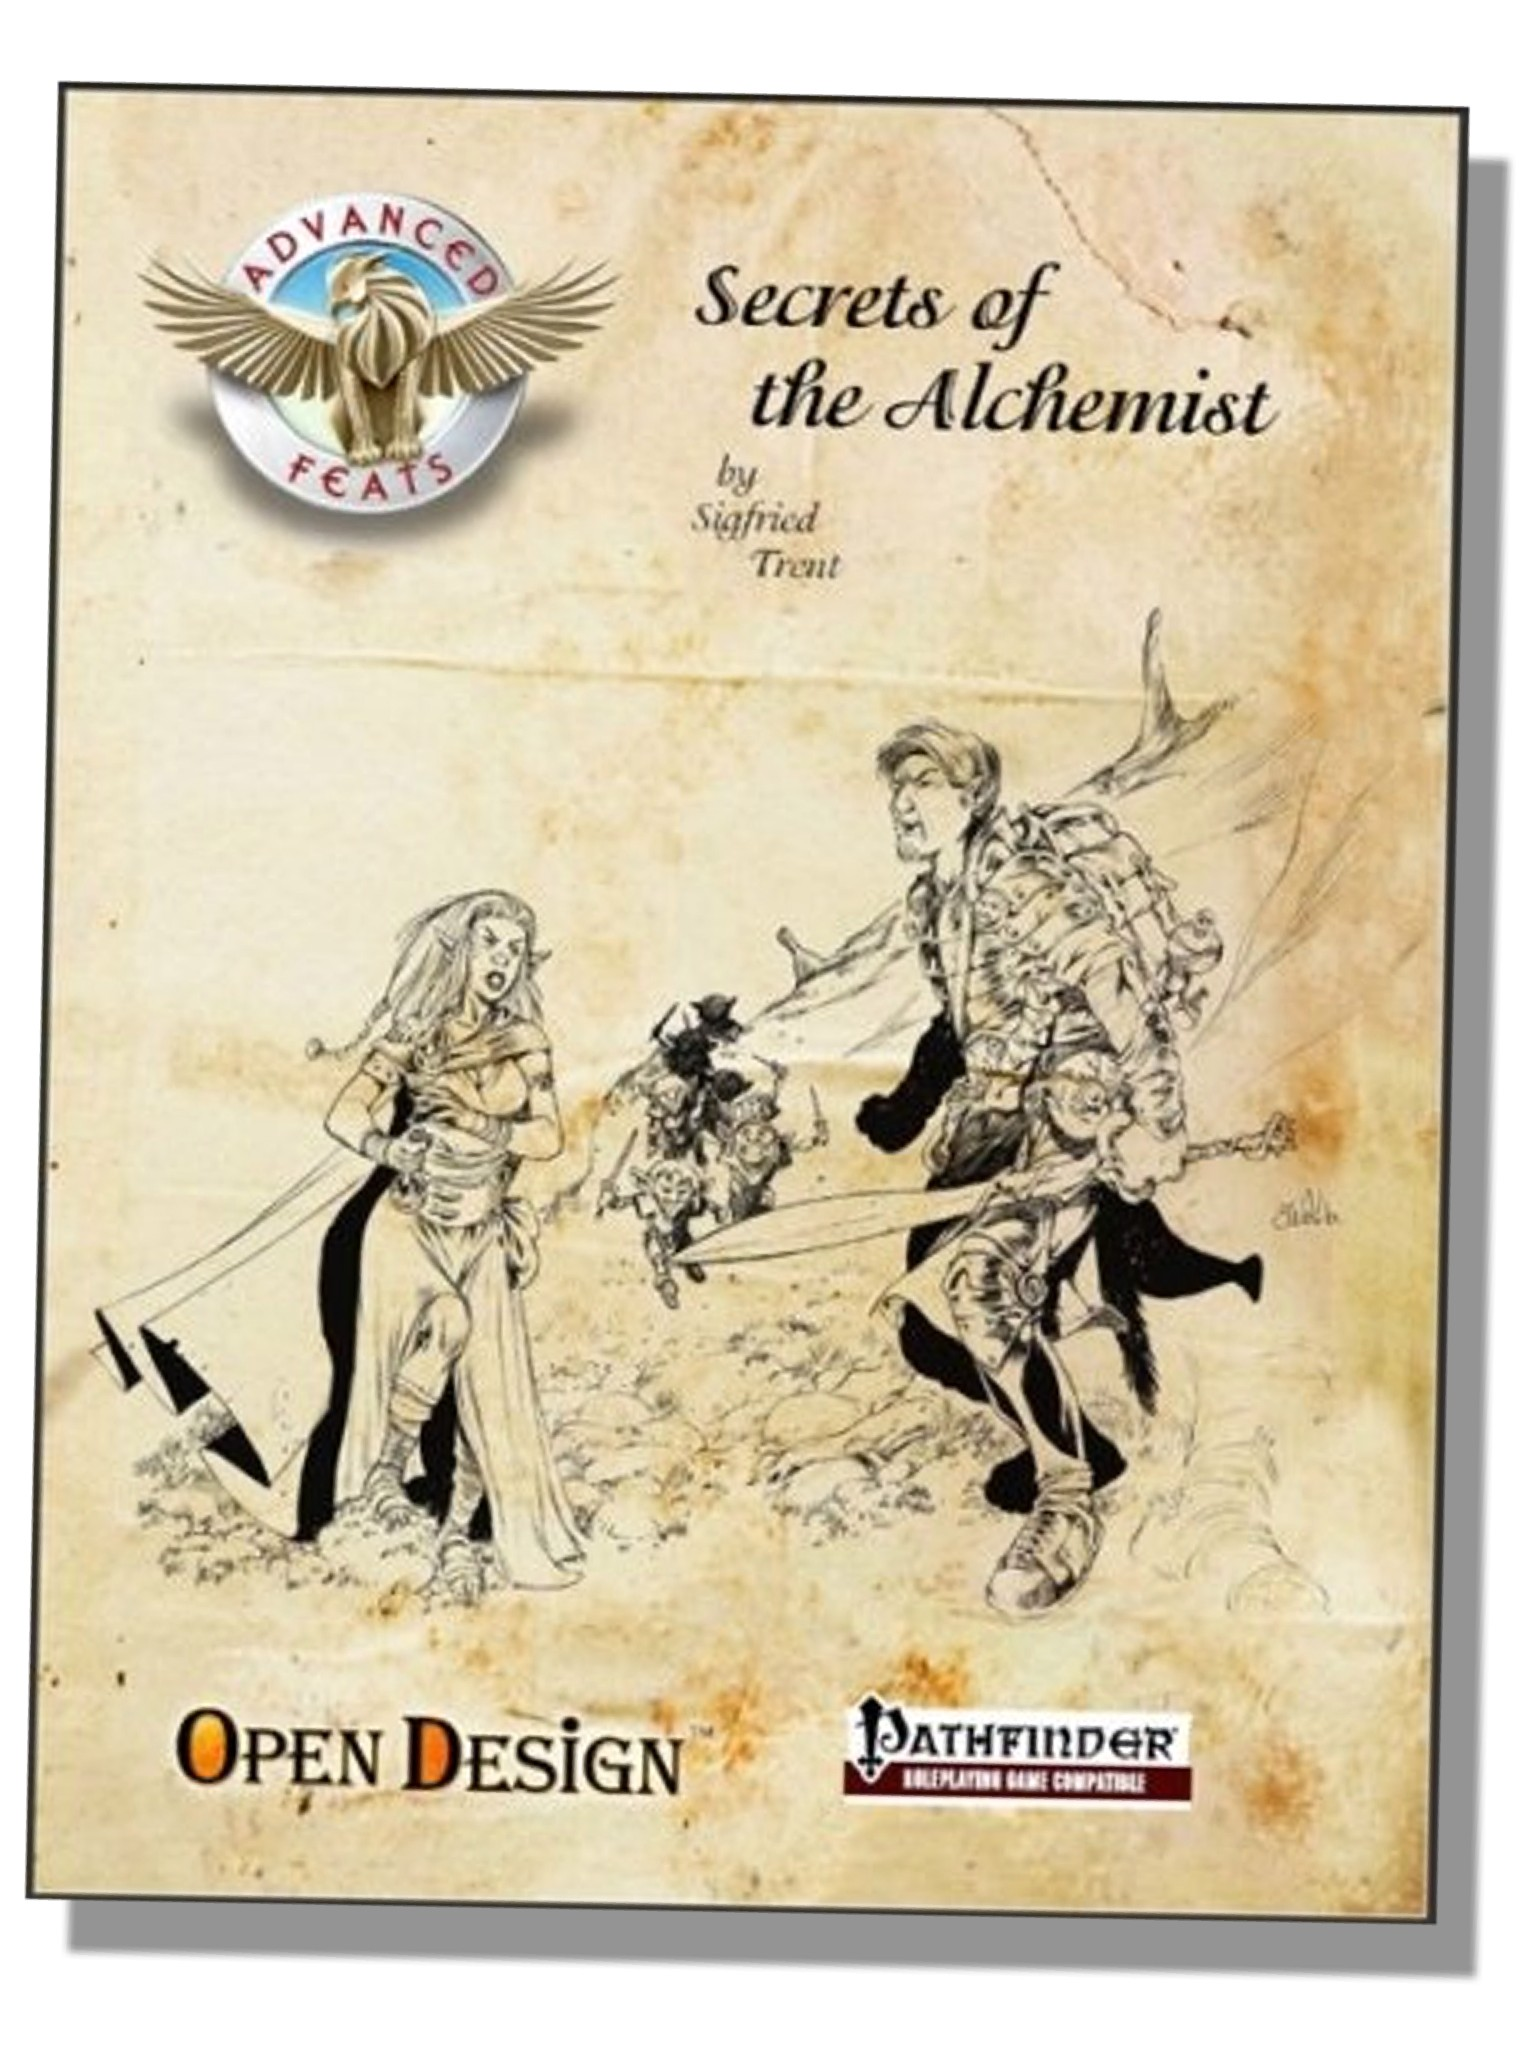 review of the alchemist book best ideas about the alchemist review  what about advanced feats secrets of the alchemist a review let